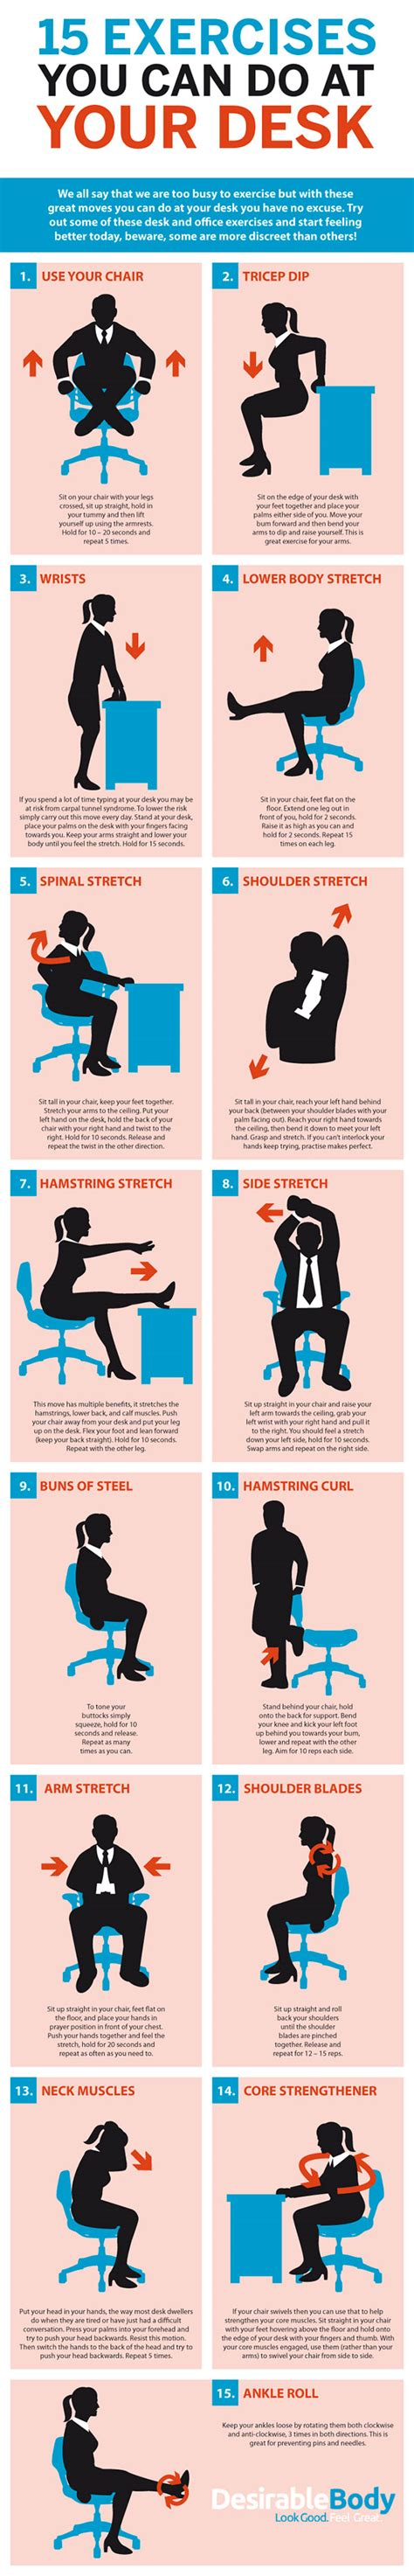 how to exercise at your desk deskercise 15 simple exercises you can do at your desk